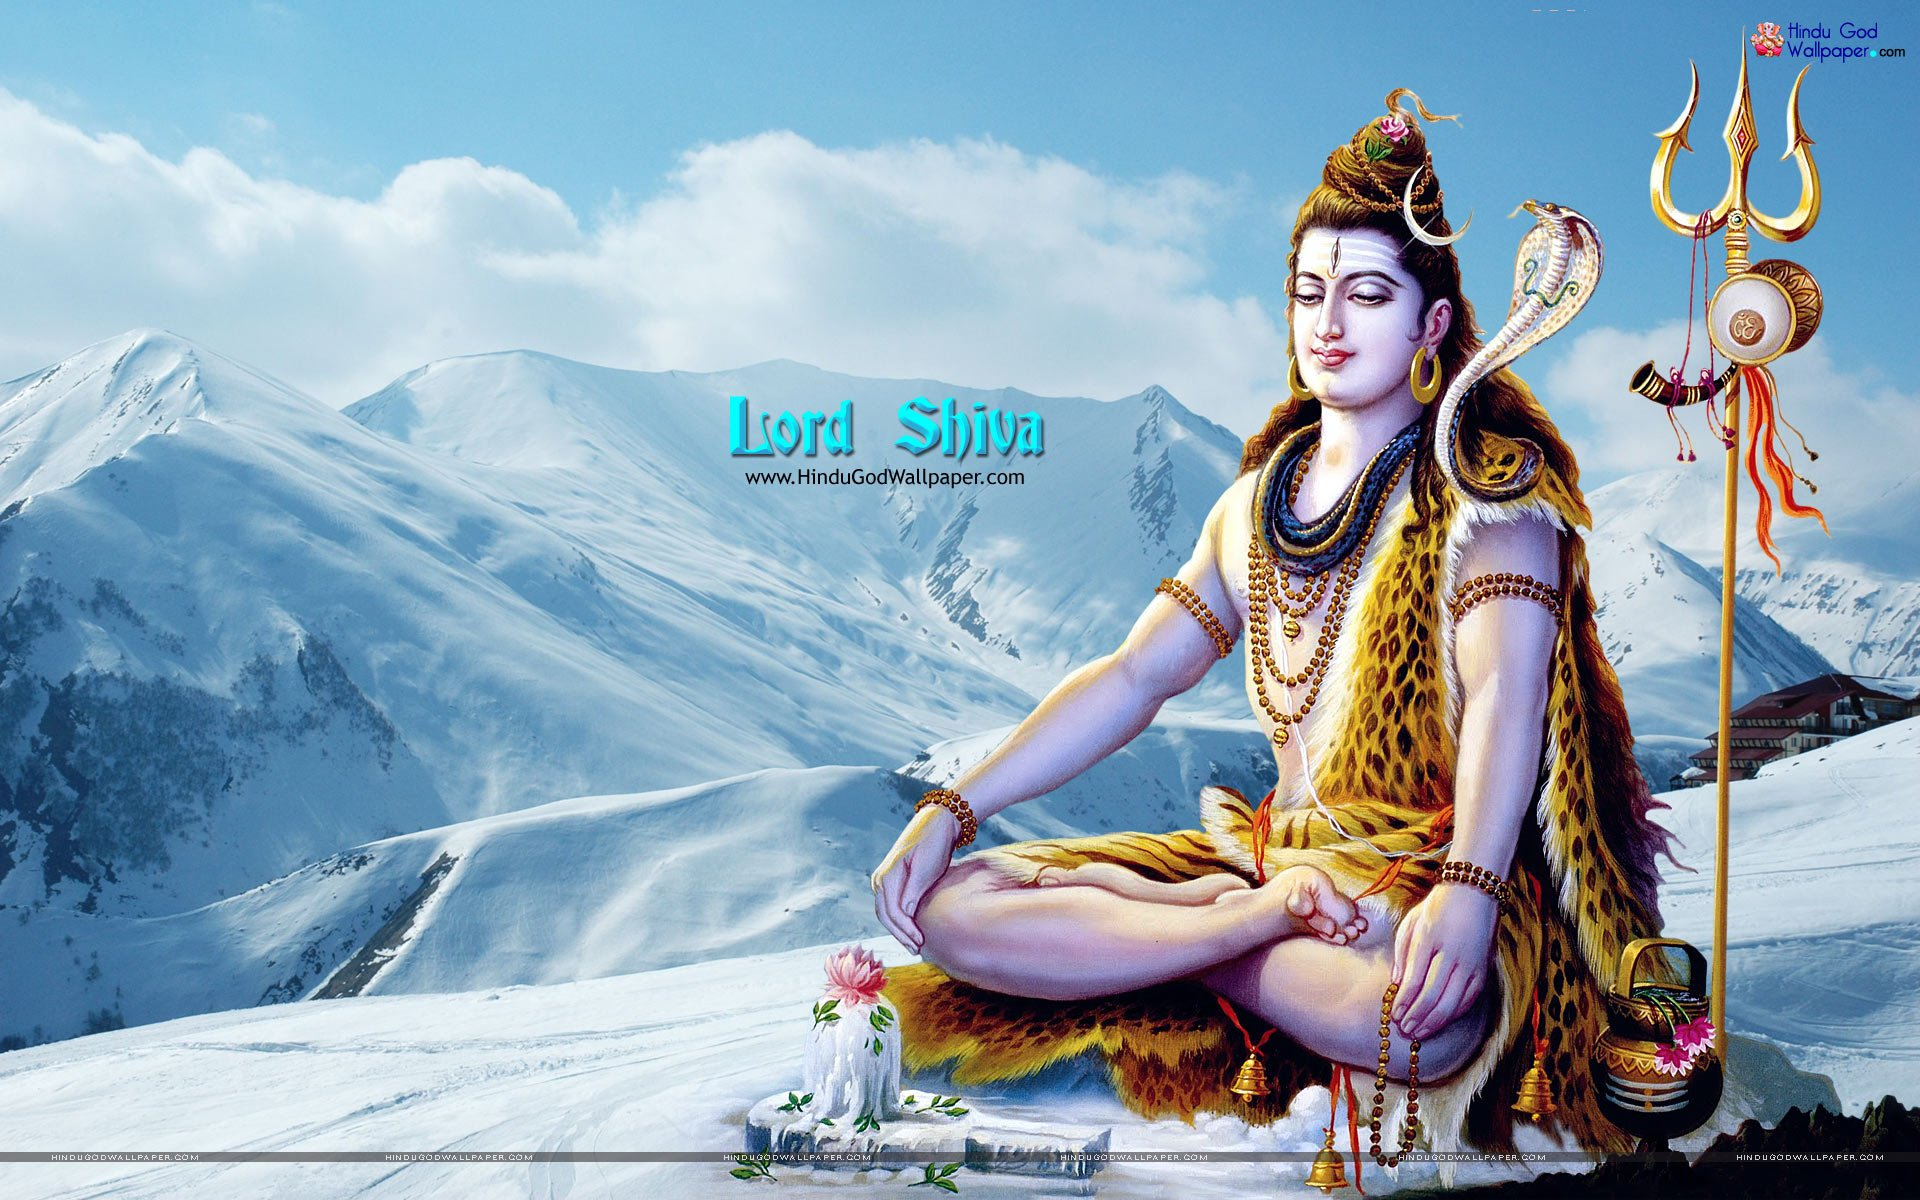 Lord Shiva Wallpapers Pictures Images Wallpaper Full Size Download 1920x1200